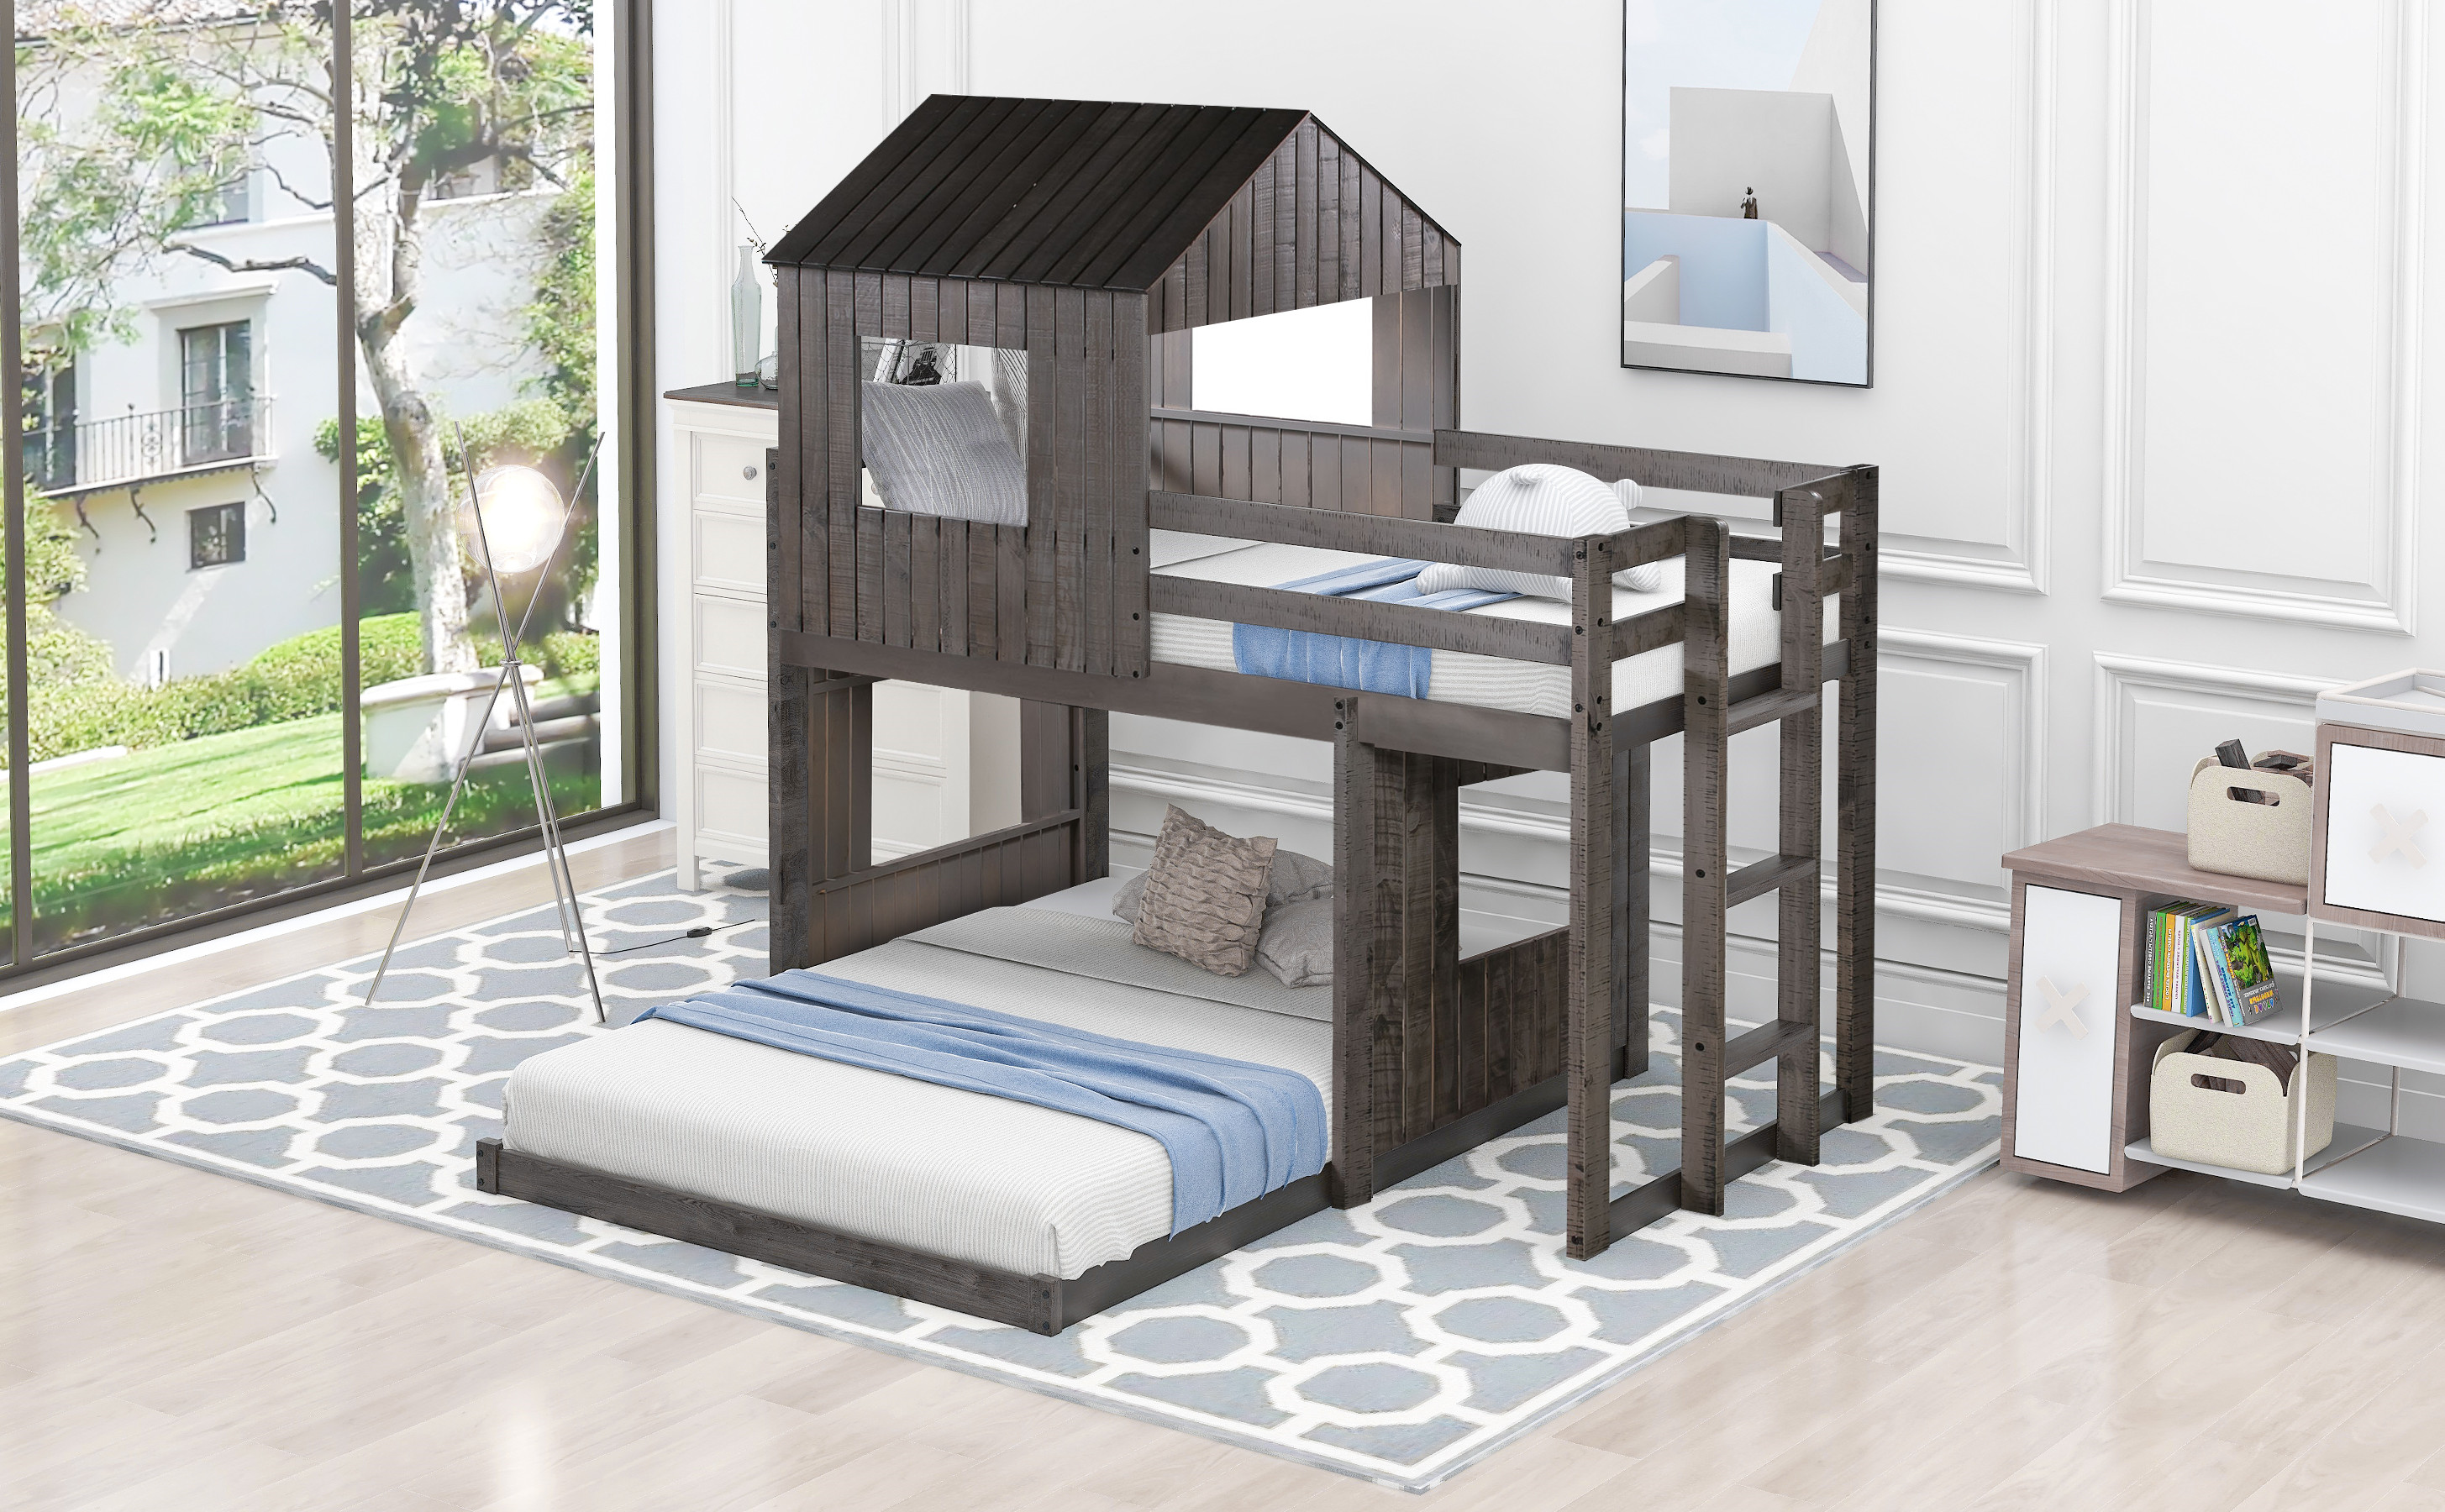 Picture of: Fantadool Wooden Twin Over Full Bunk Bed Loft Bed With Playhouse Farmhouse Ladder And Guardrails For Kids Toddlers Boys Girls Antique Gray Walmart Com Walmart Com